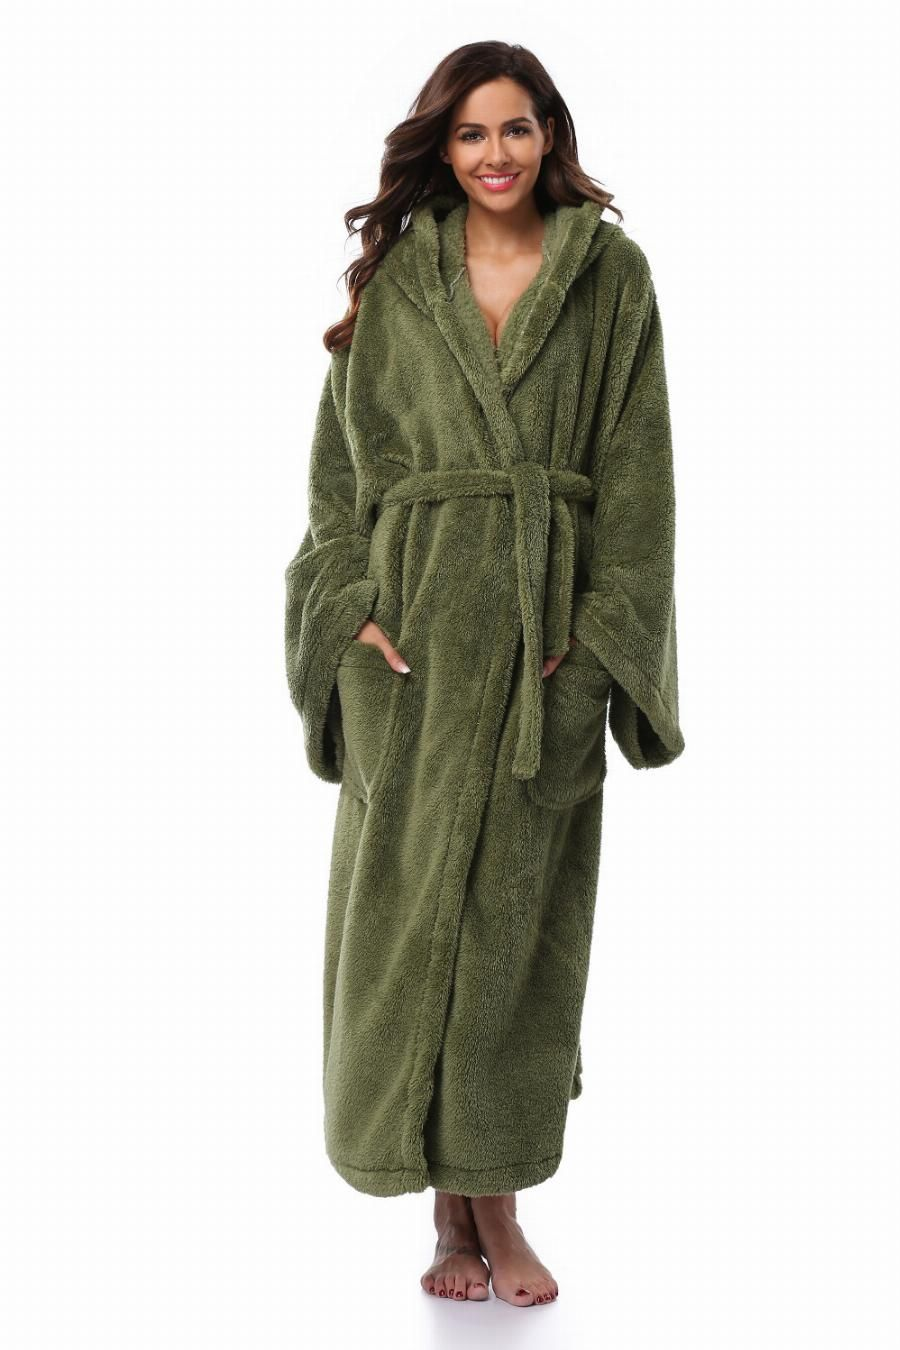 Winter Thick Warm Women Robes 2017 Coral Fleece Sleepwear Long Robe Woman  Hotel Spa Plush Long Hooded Bathrobe Nightgown Kimono a07ec6768